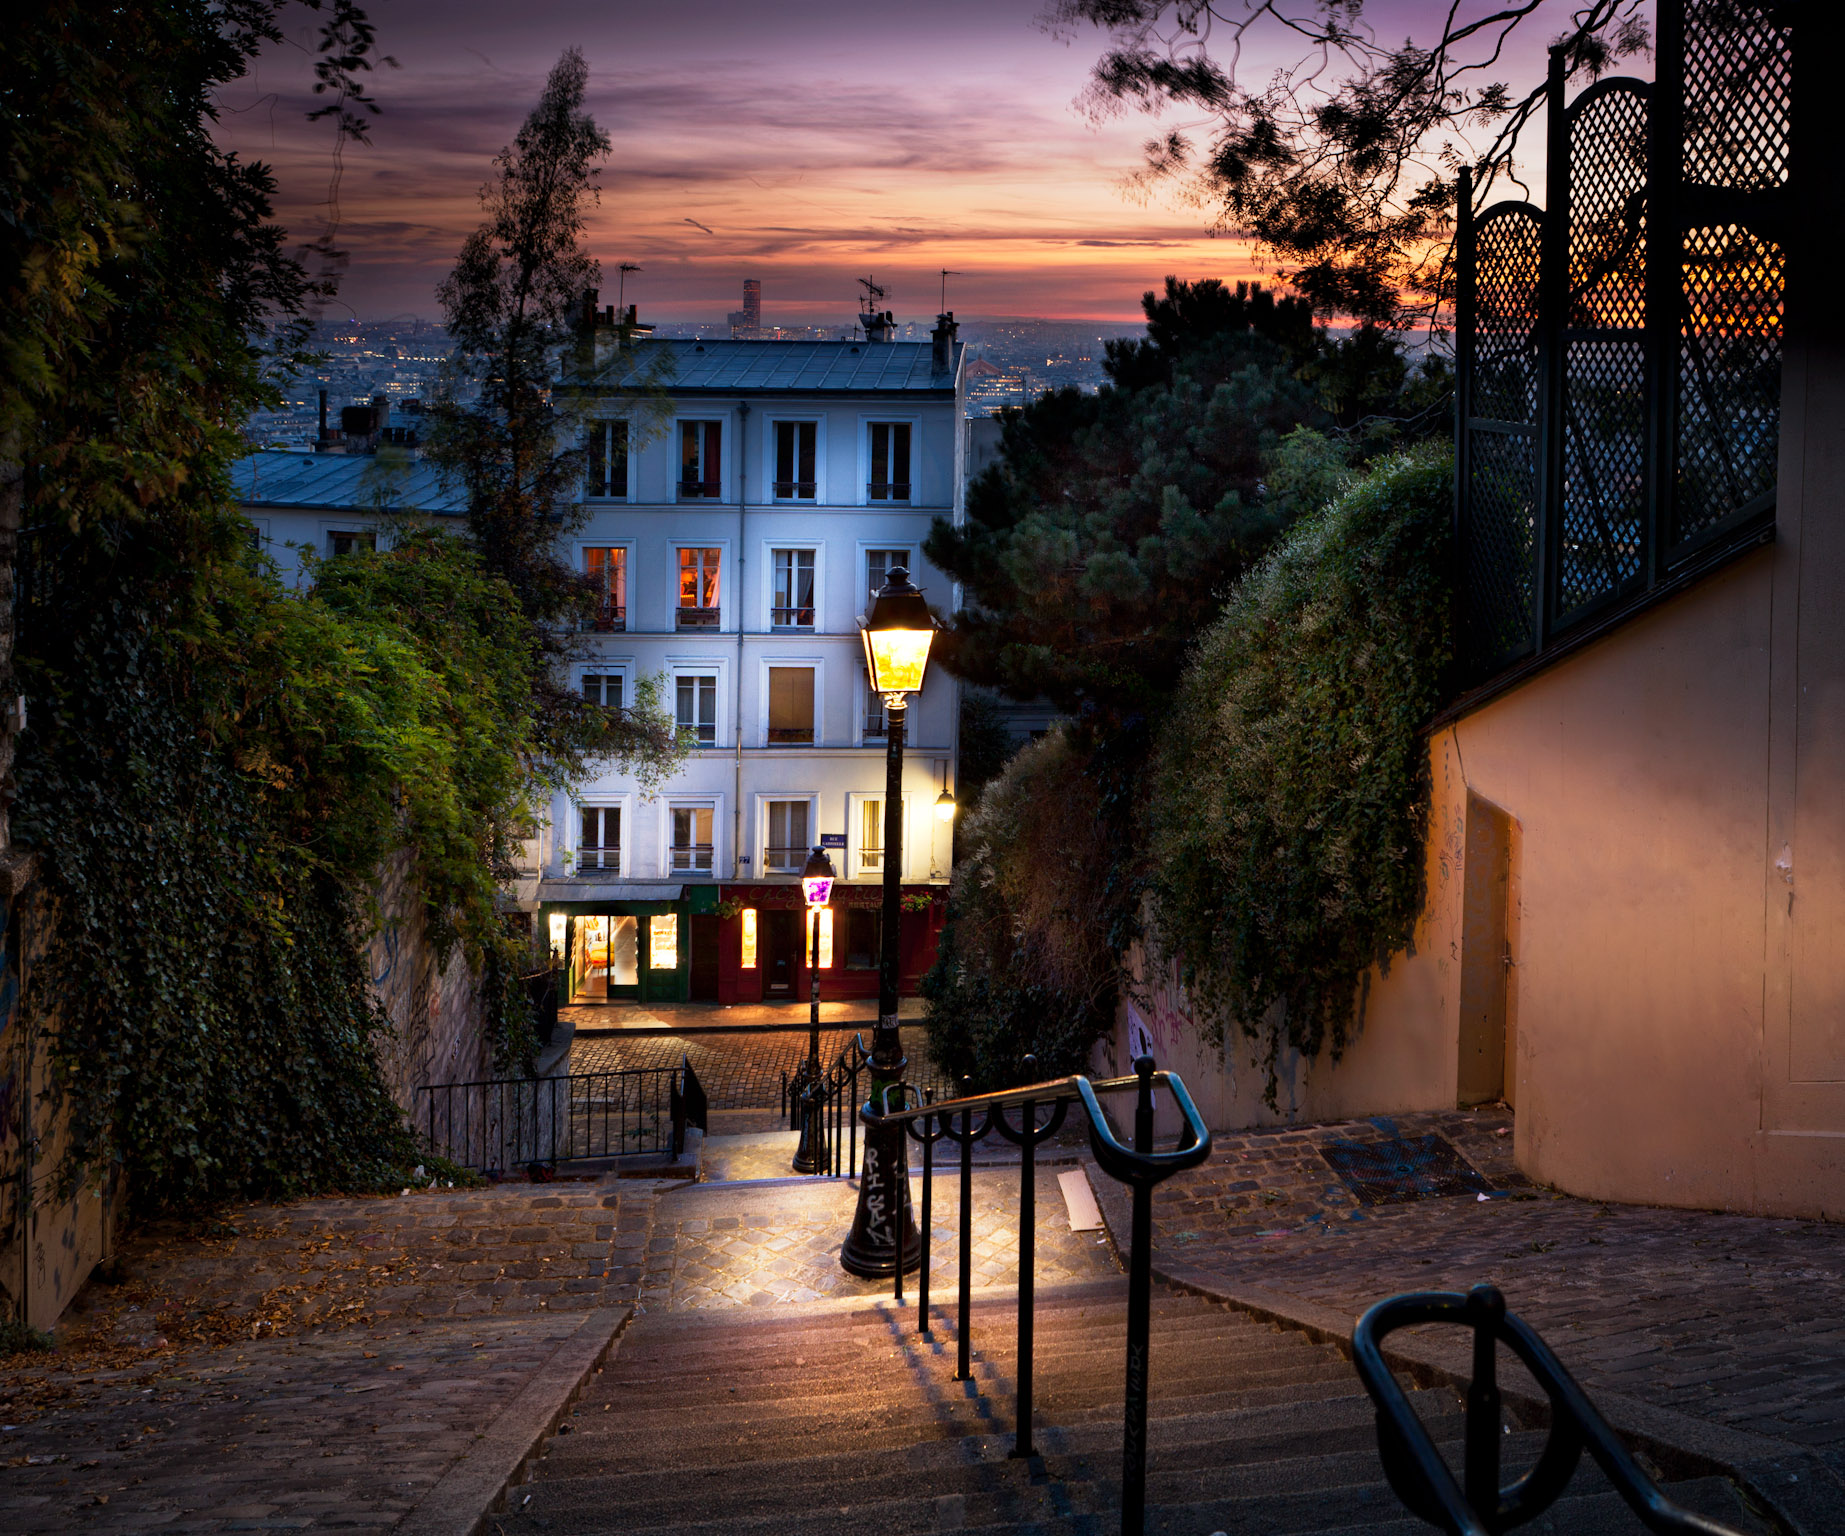 My favorite stairs in Montmartre, I came back many times to this spot to get the right sunset.